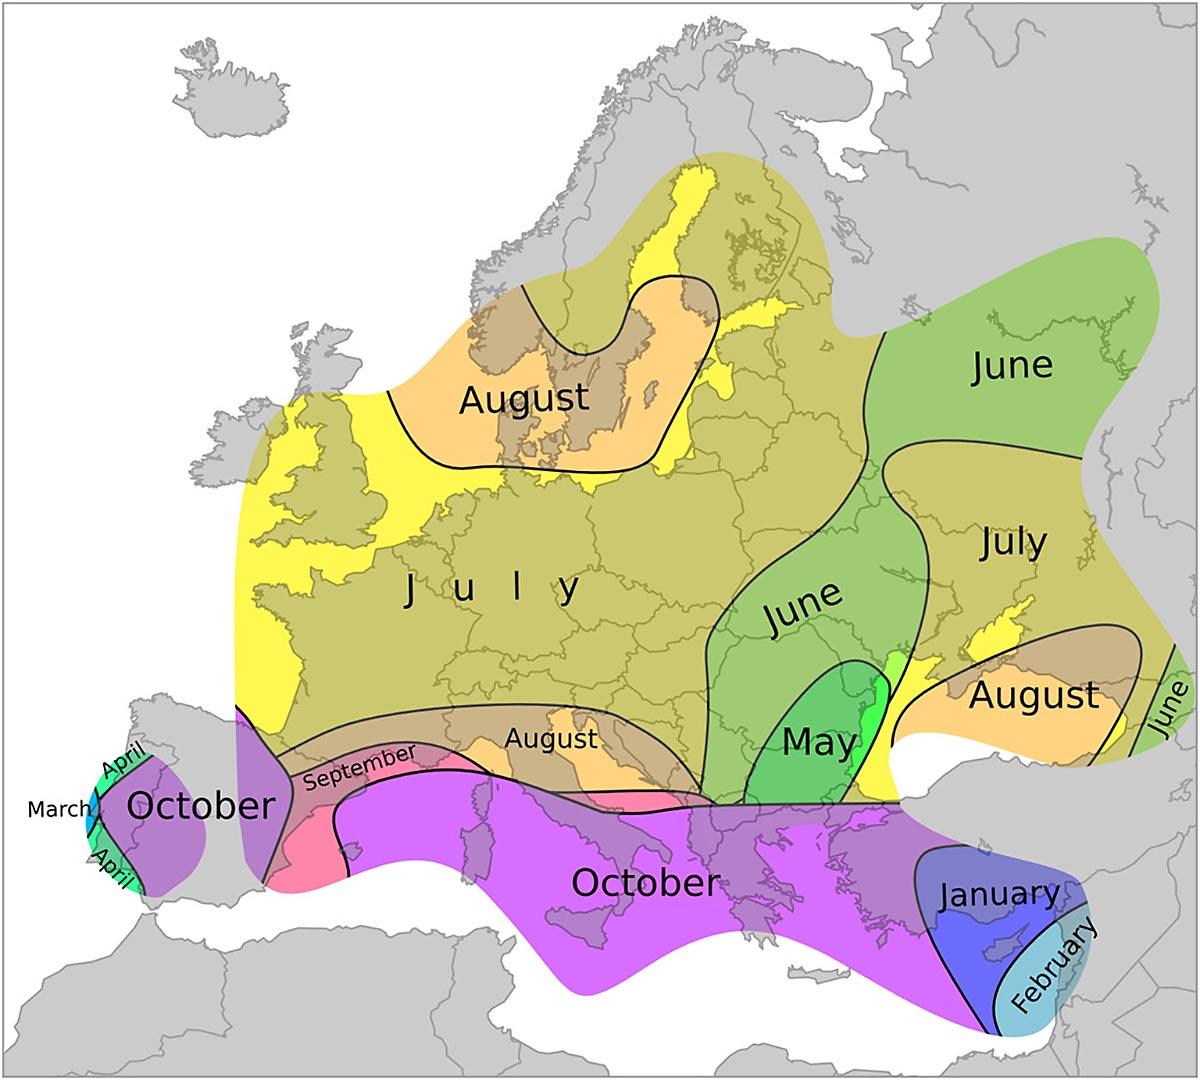 severe-weather-tornado-outbreak-lombardy-italy-annual-activity